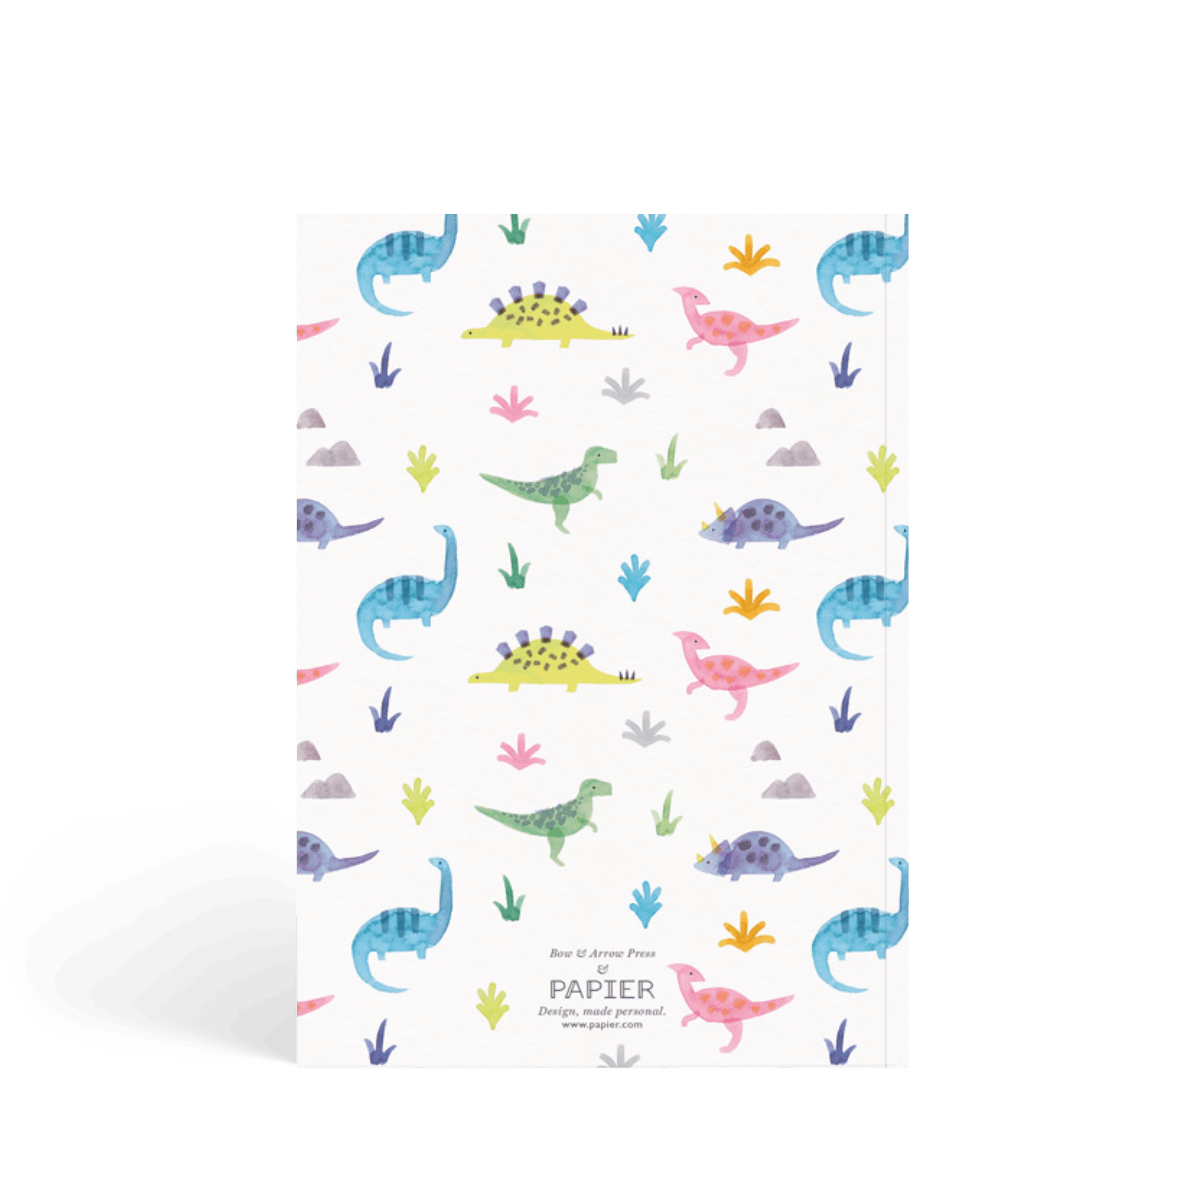 Https%3a%2f%2fwww.papier.com%2fproduct image%2f54952%2f5%2fbright dinosaurs 13206 arriere 1542299017.png?ixlib=rb 1.1